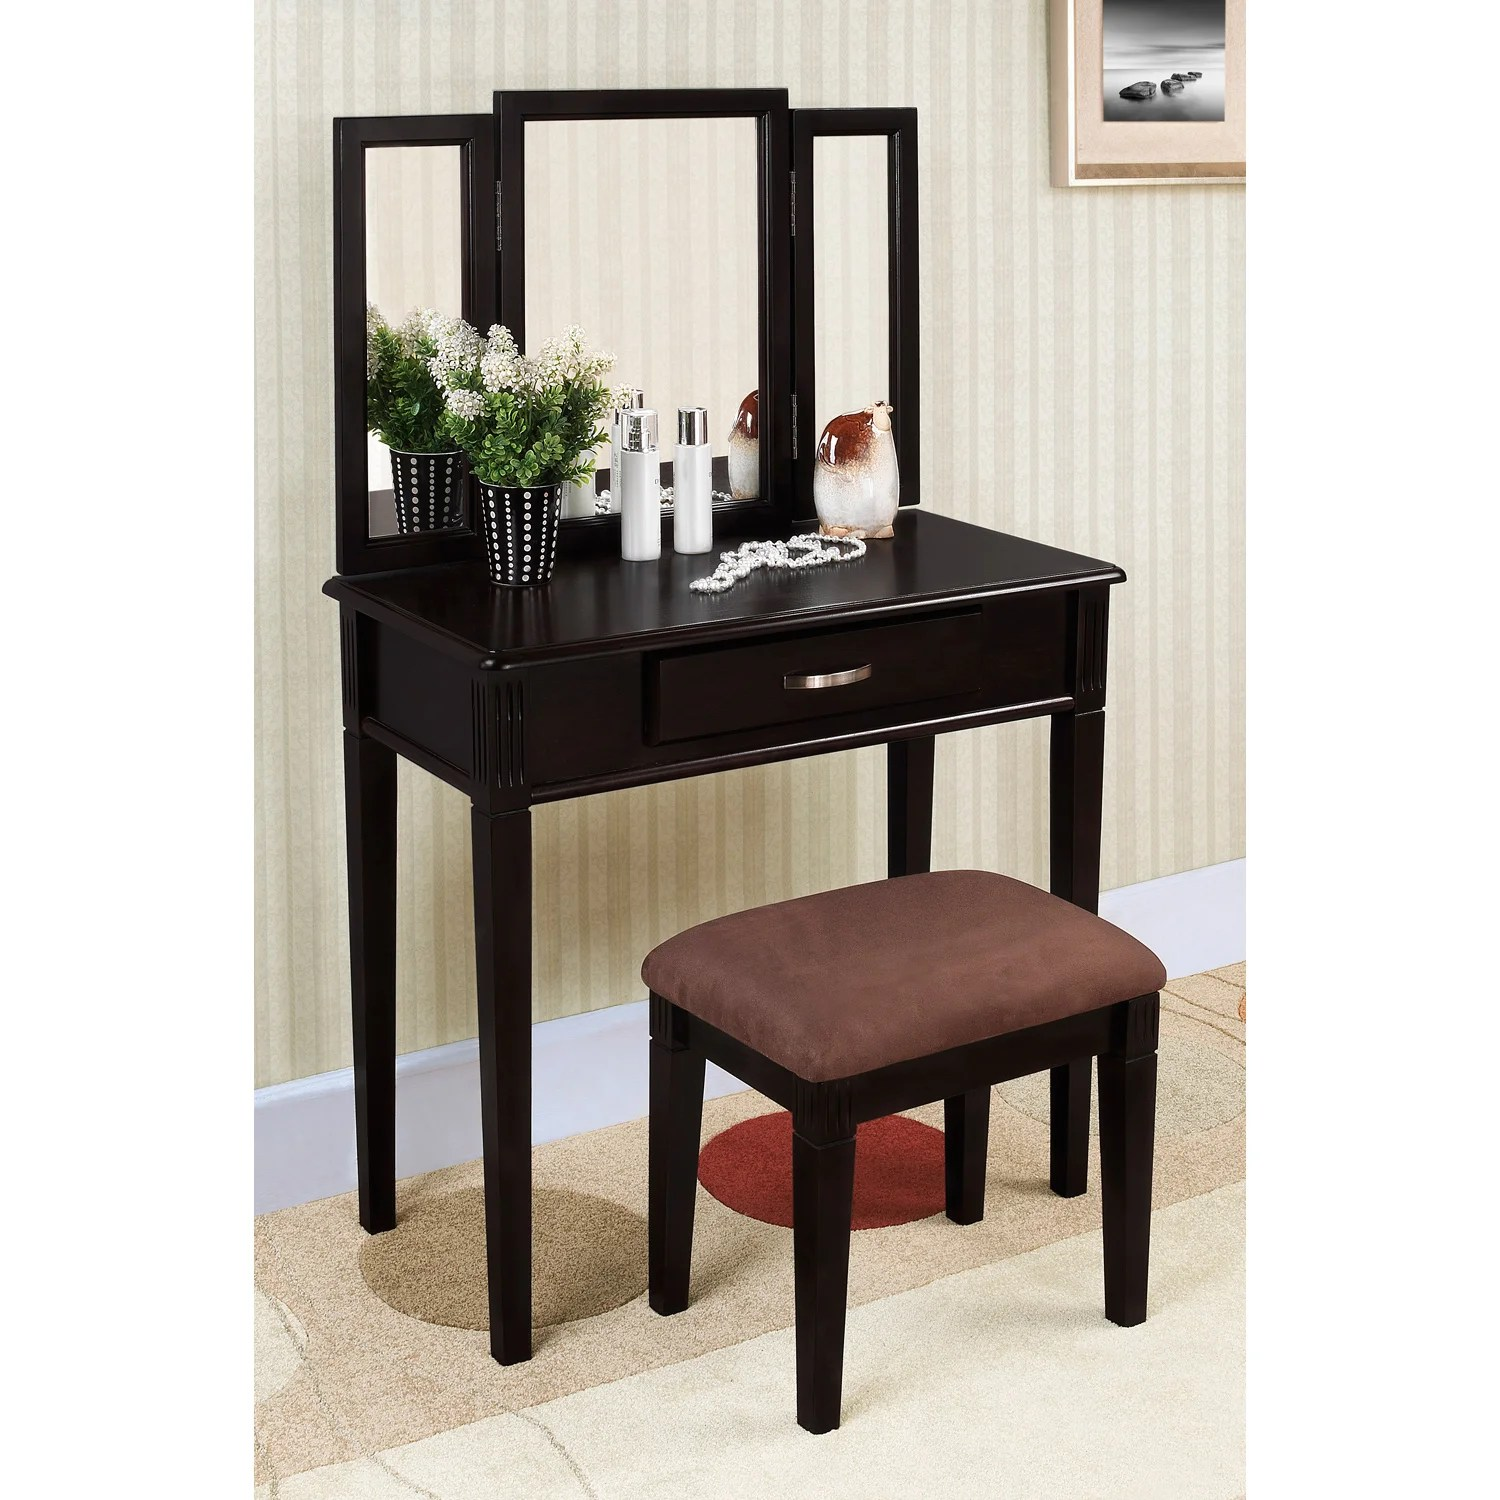 Black Finish Trimirror Vanity Table and Stool  14257750  Overstockcom Shopping  The Best